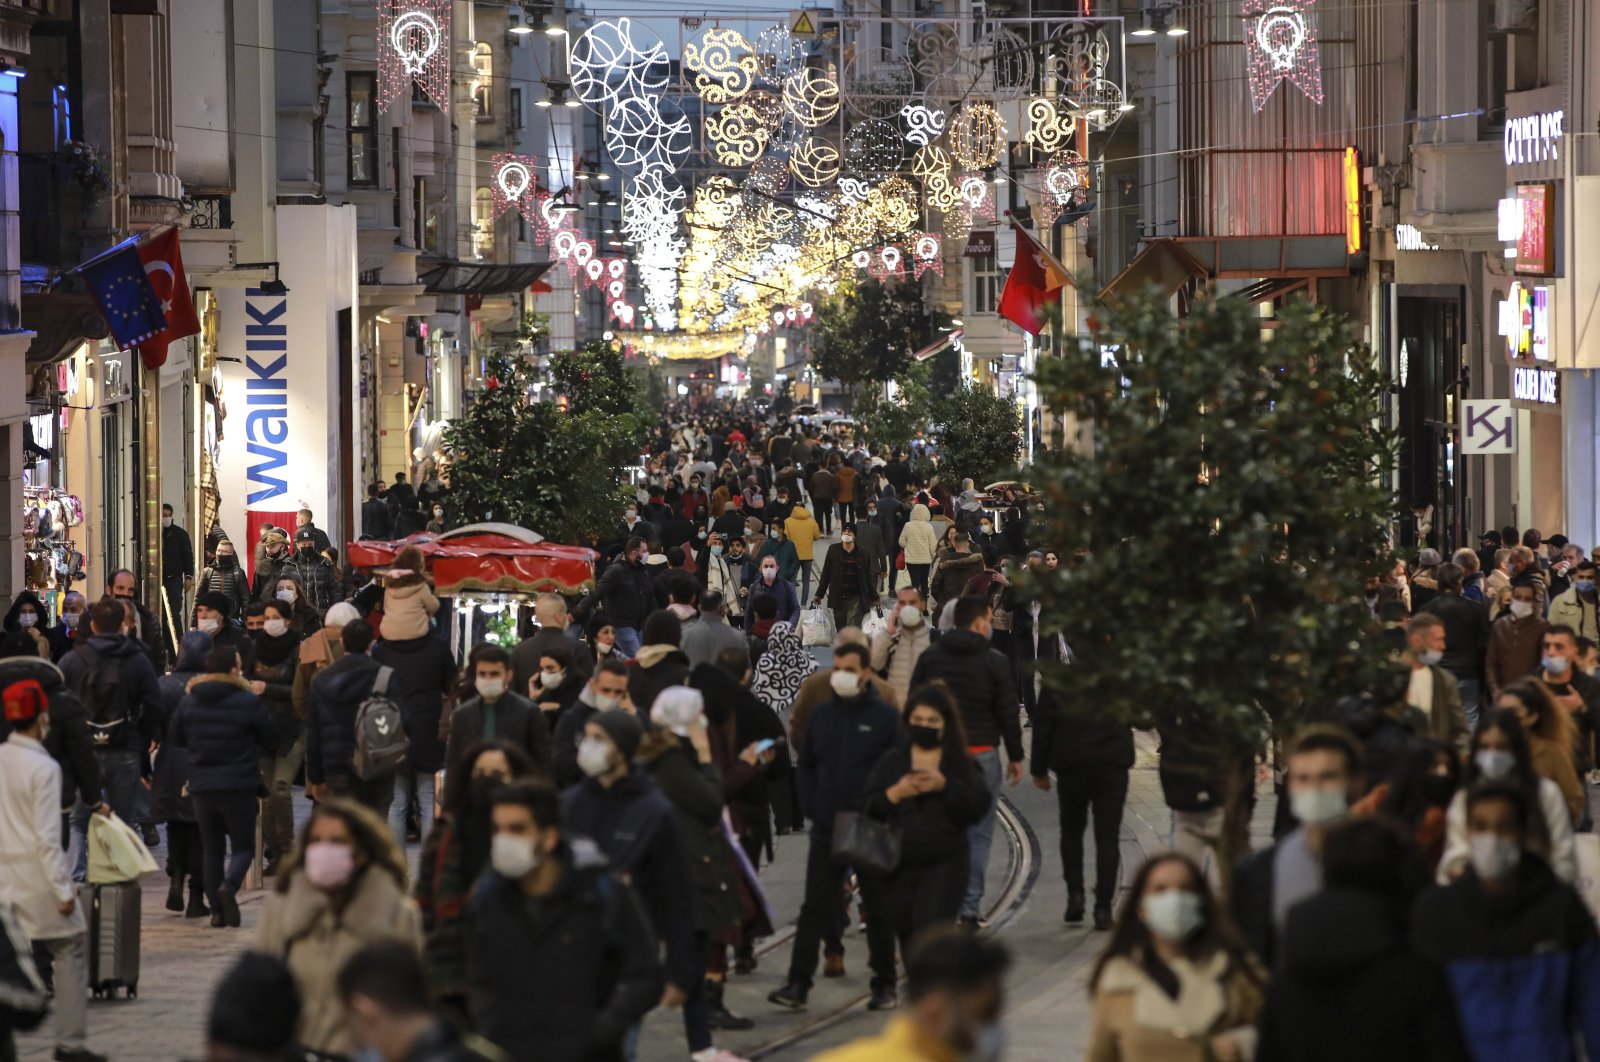 People wearing protective masks walk along Istiklal Avenue, in Istanbul, Turkey, Nov. 21, 2020. (AP Photo)